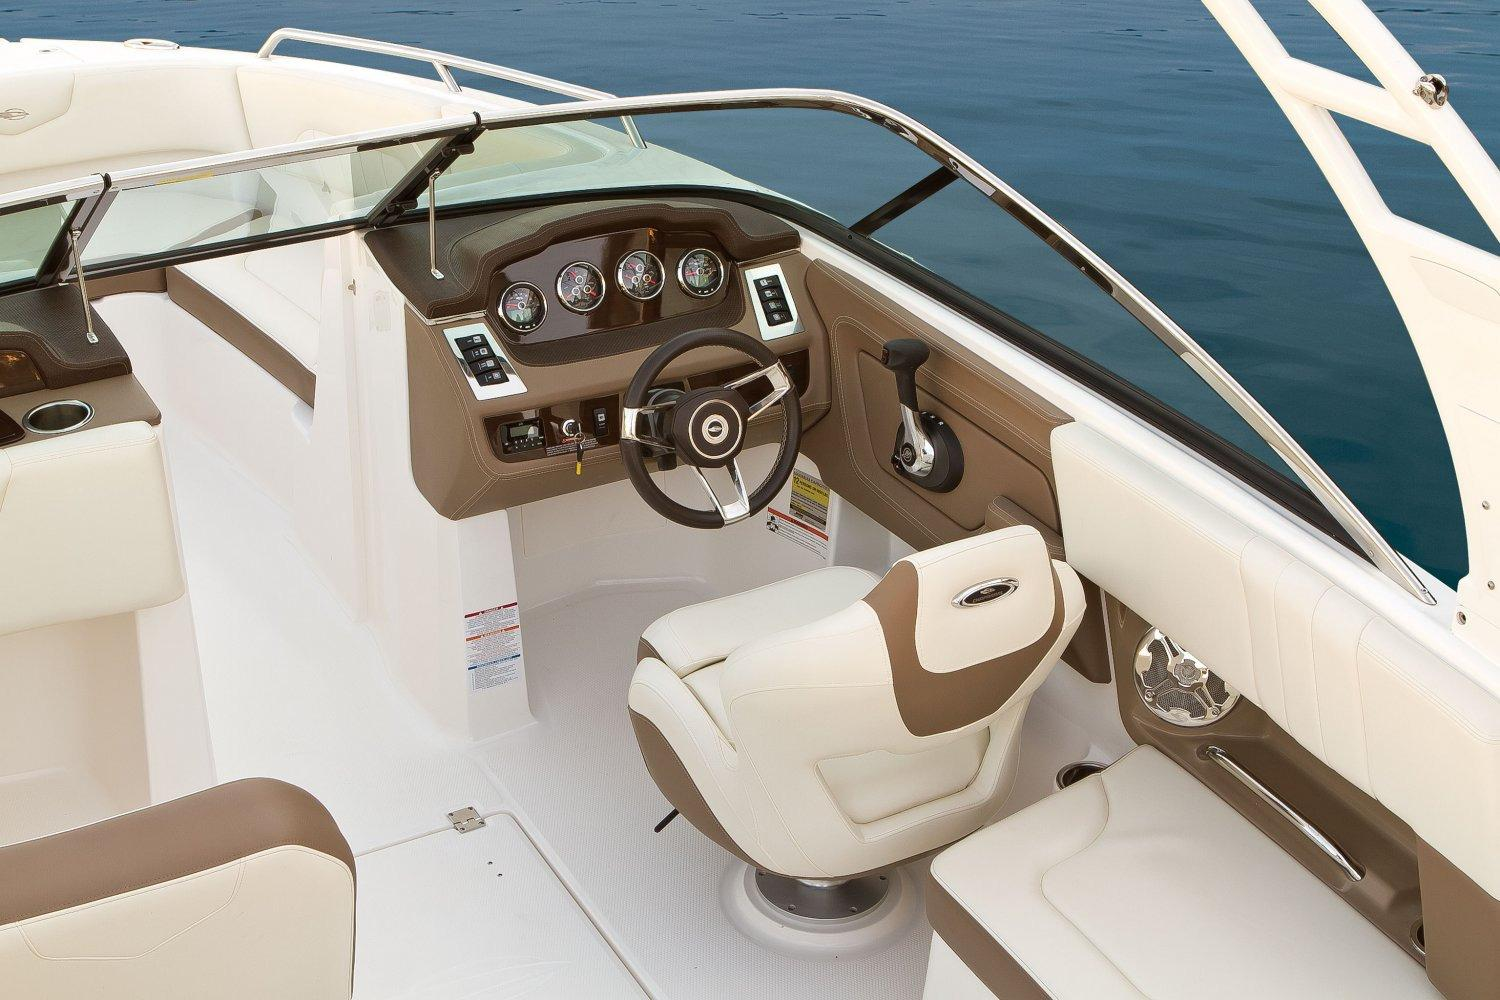 2016 Chaparral 227 SSX in Round Lake, Illinois